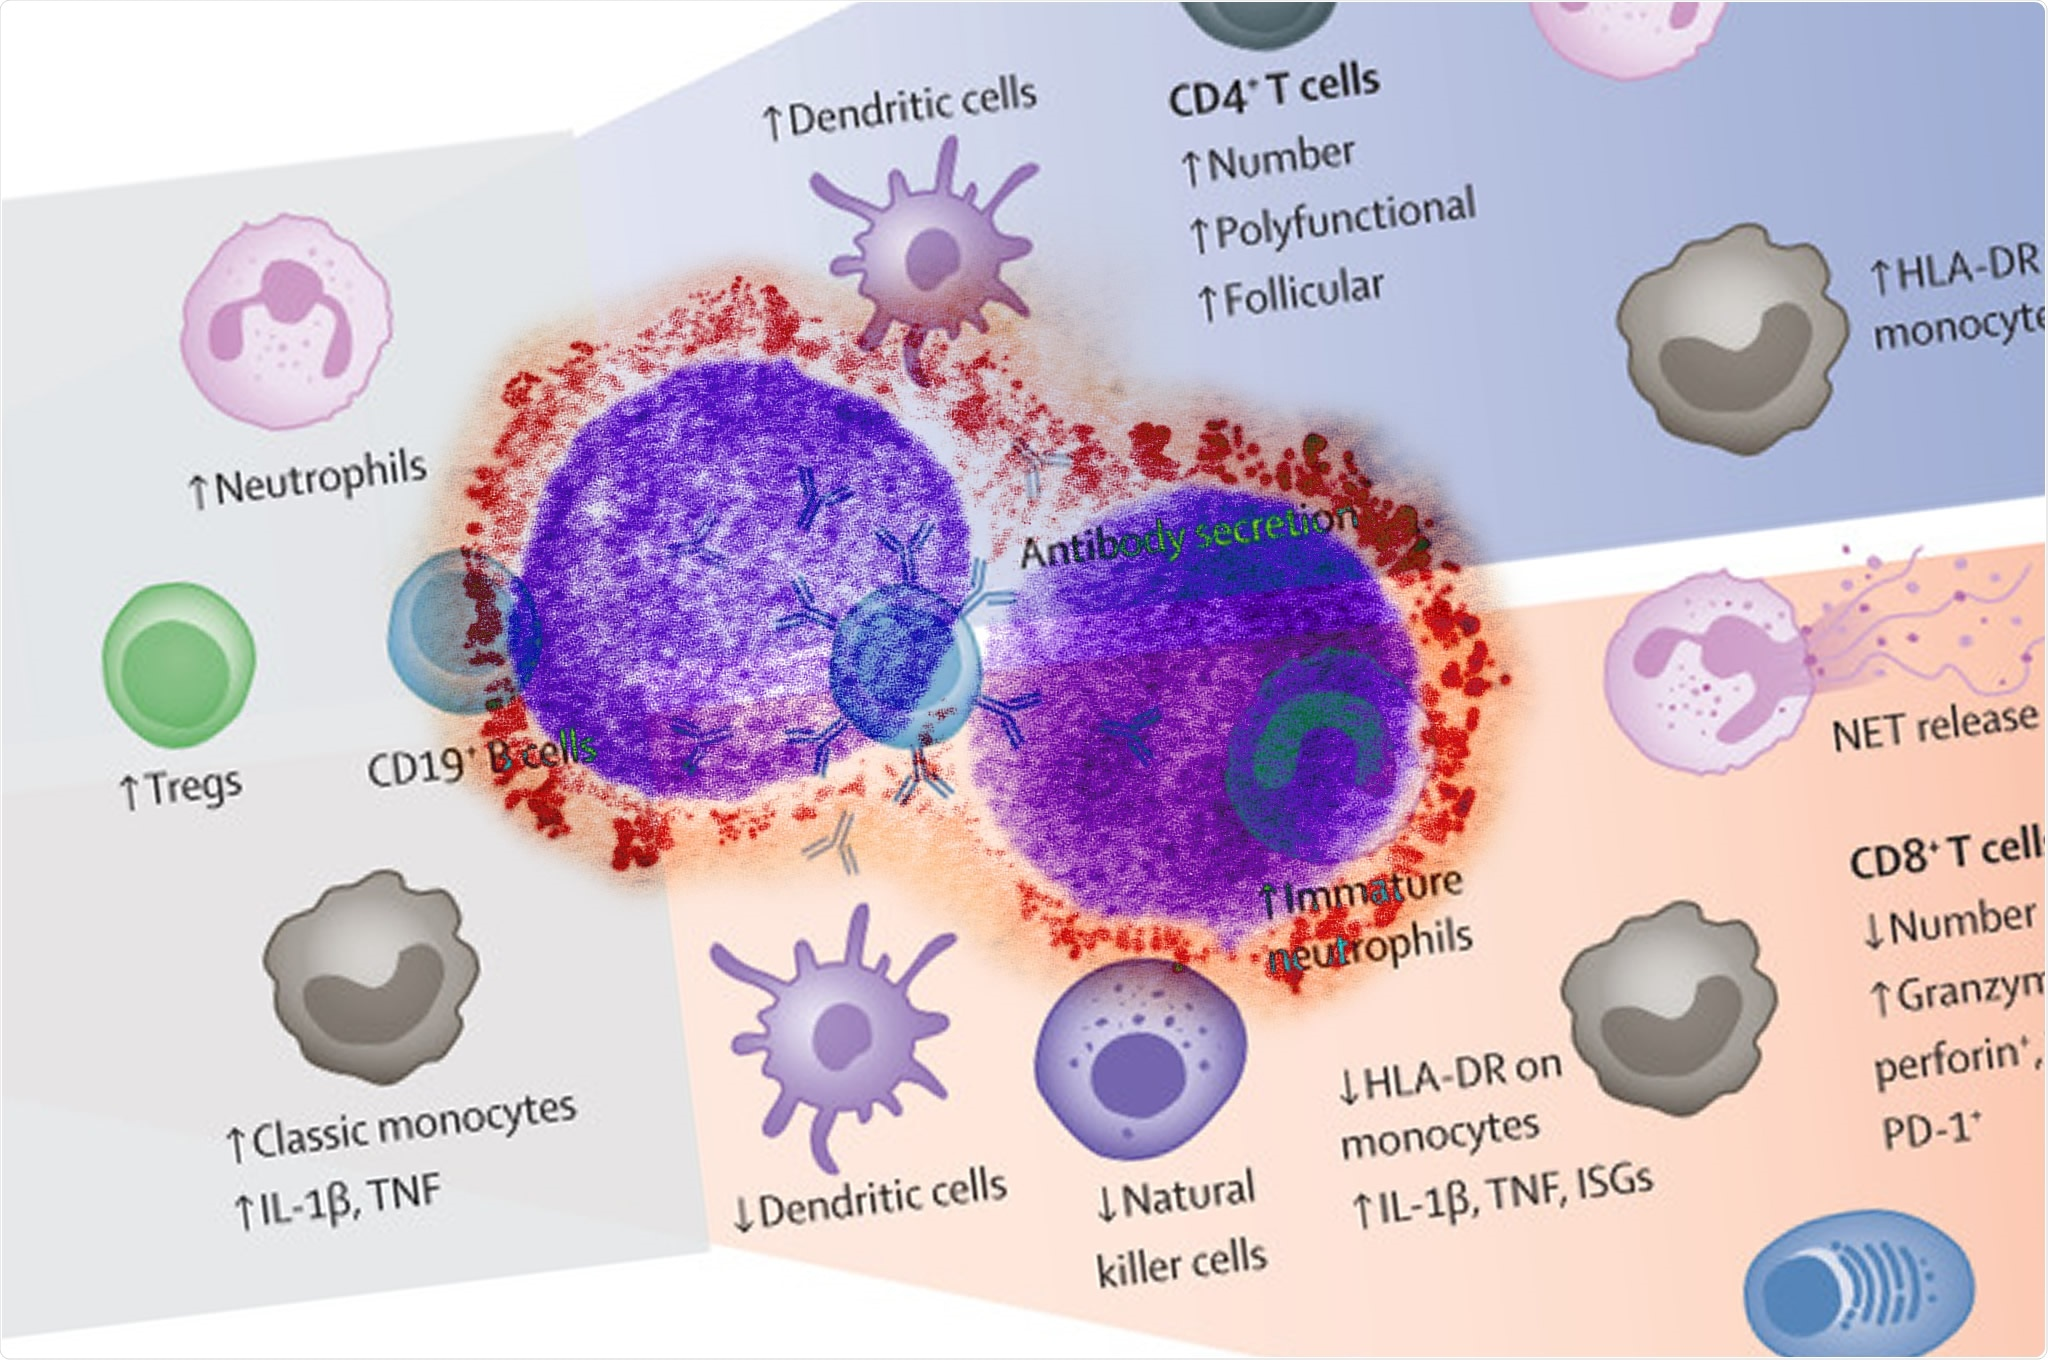 Study: The COVID-19 puzzle: deciphering pathophysiology and phenotypes of a new disease entity. Image Credit: The Lancet: NIAID